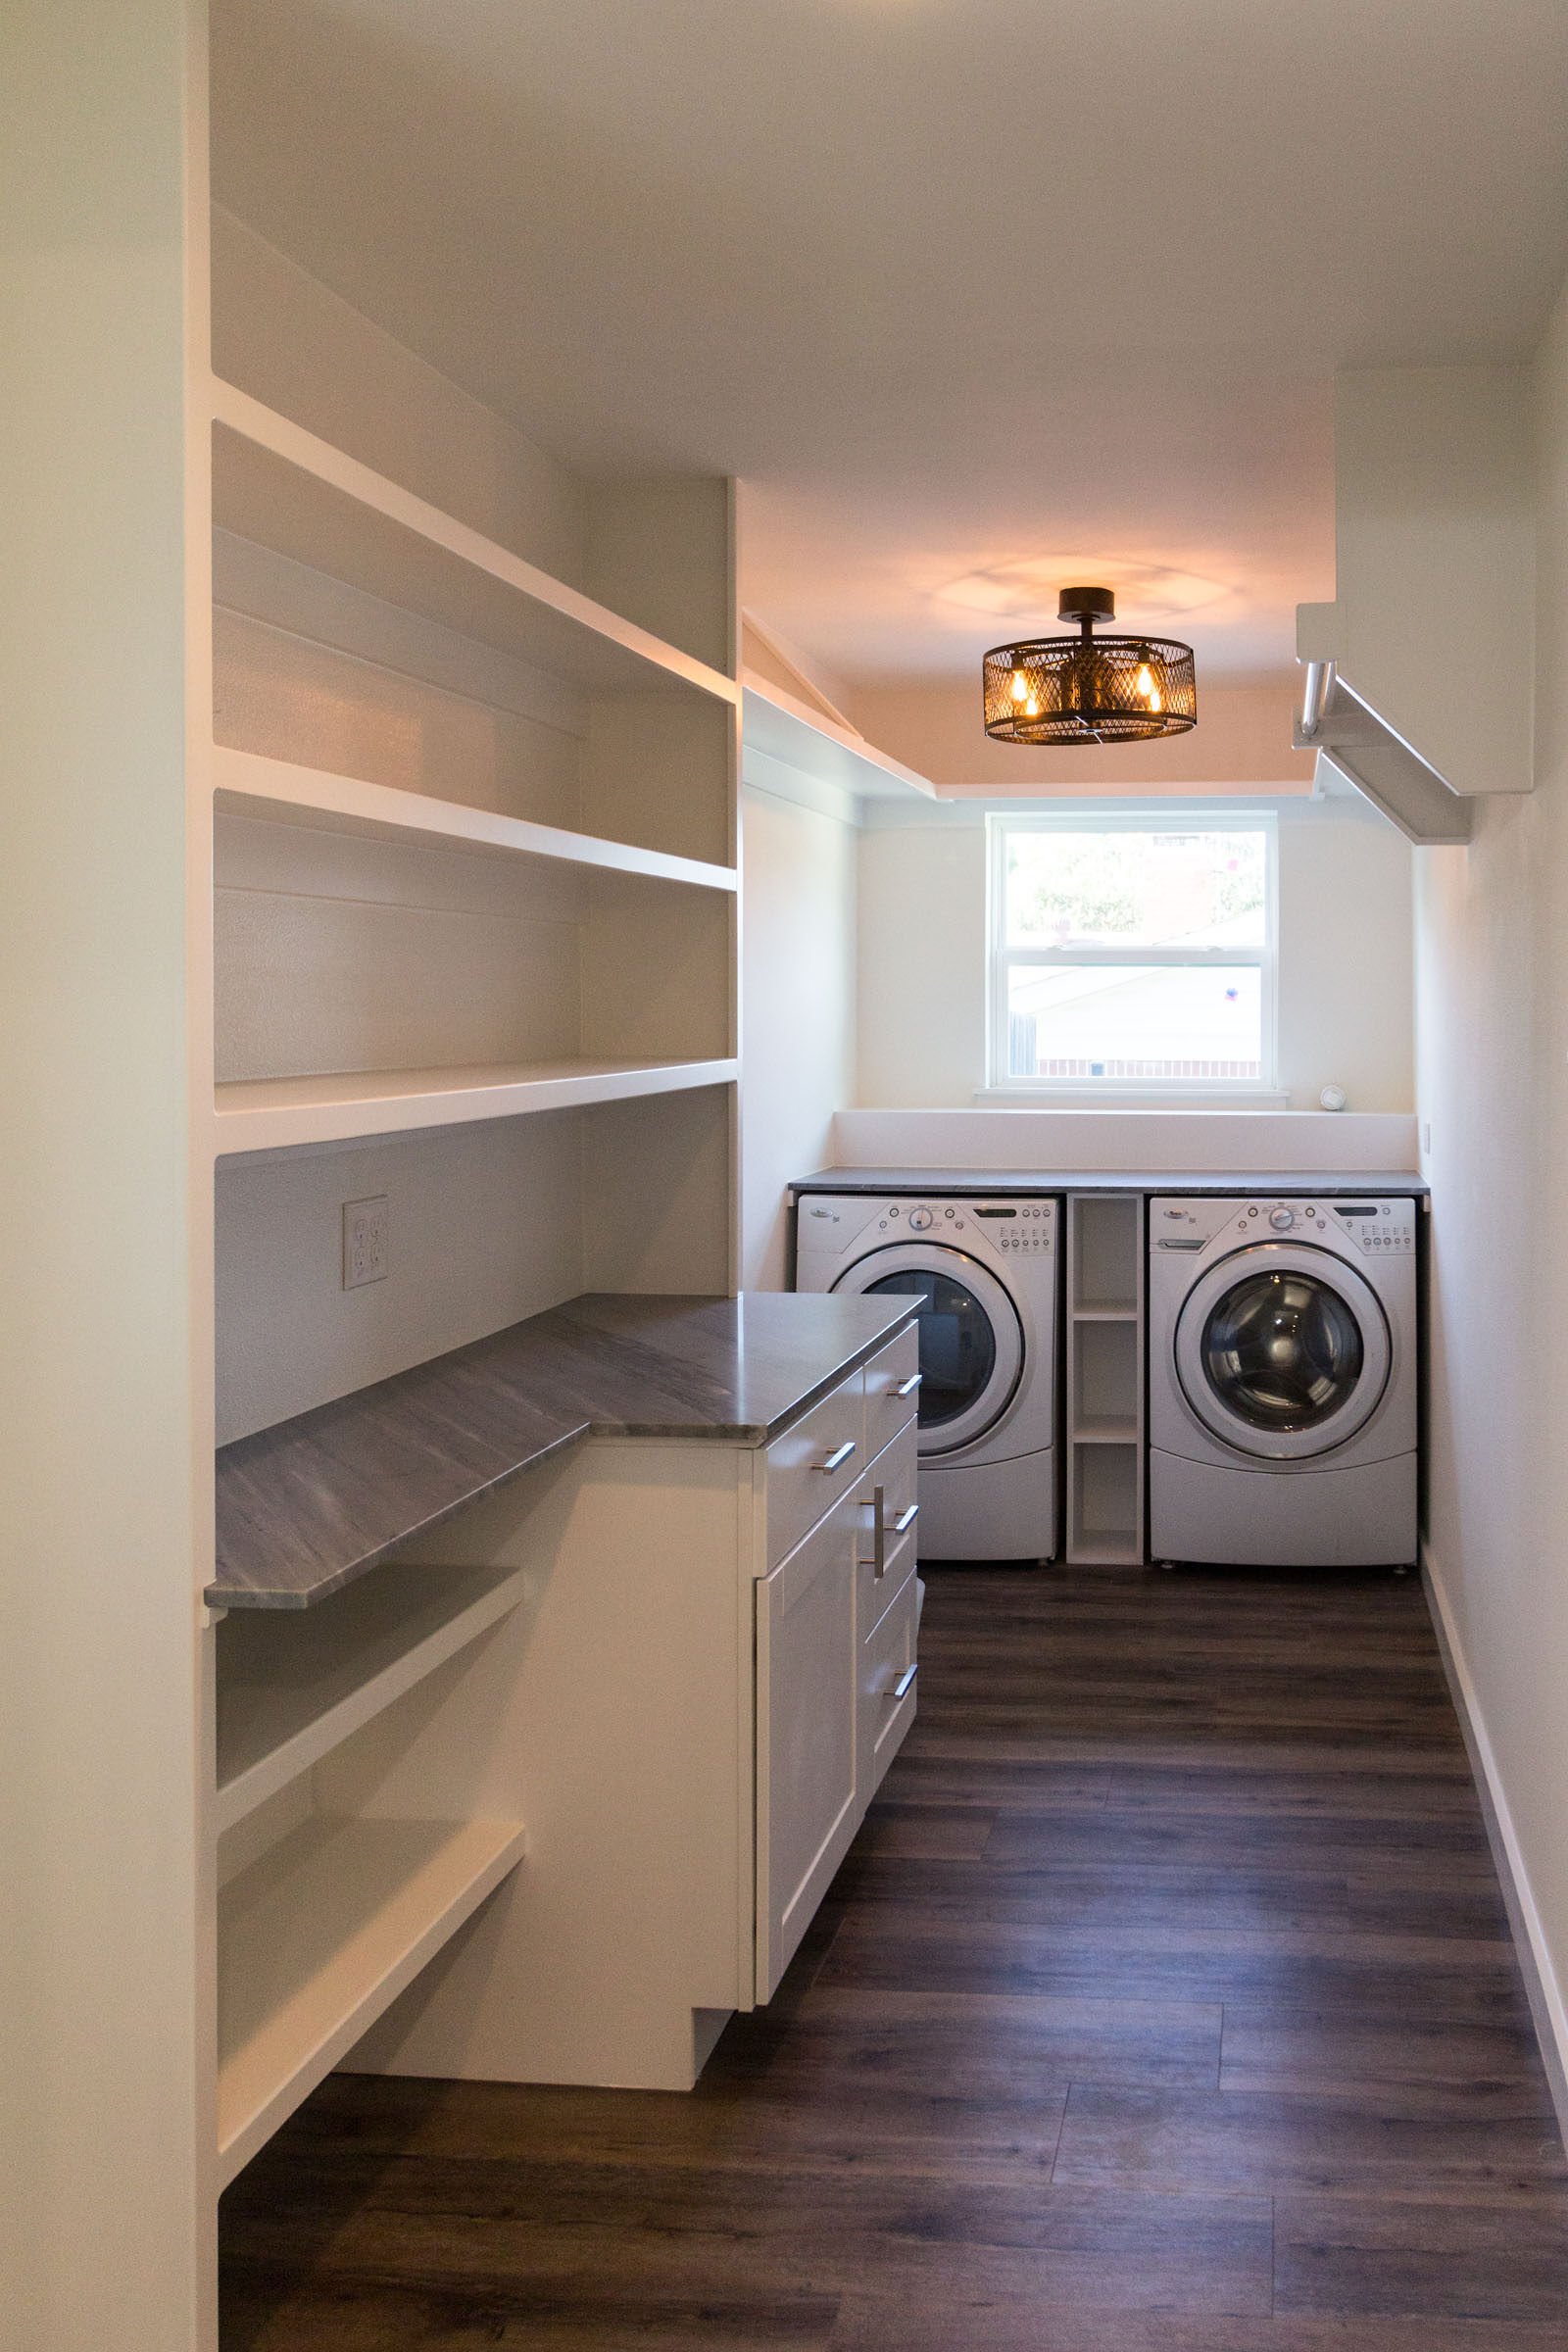 Laundry room built in shelves with folding counter and wood floors